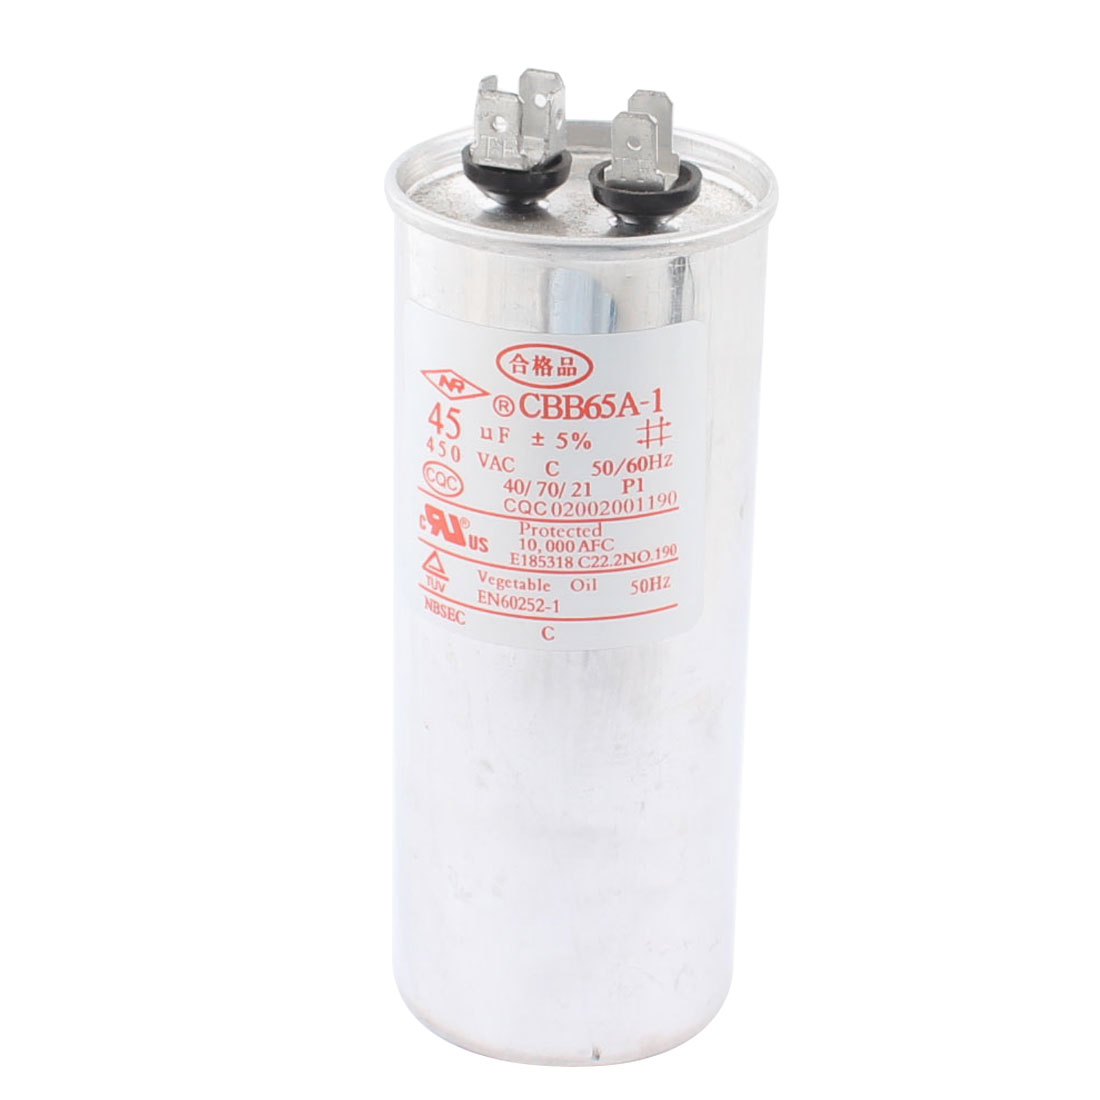 CBB65 AC 450V 45uF 5% Tolerance Cylinder Shaped Metal Housing Polypropylene Film Air Conditioner Compressor Motor Running Capacitor